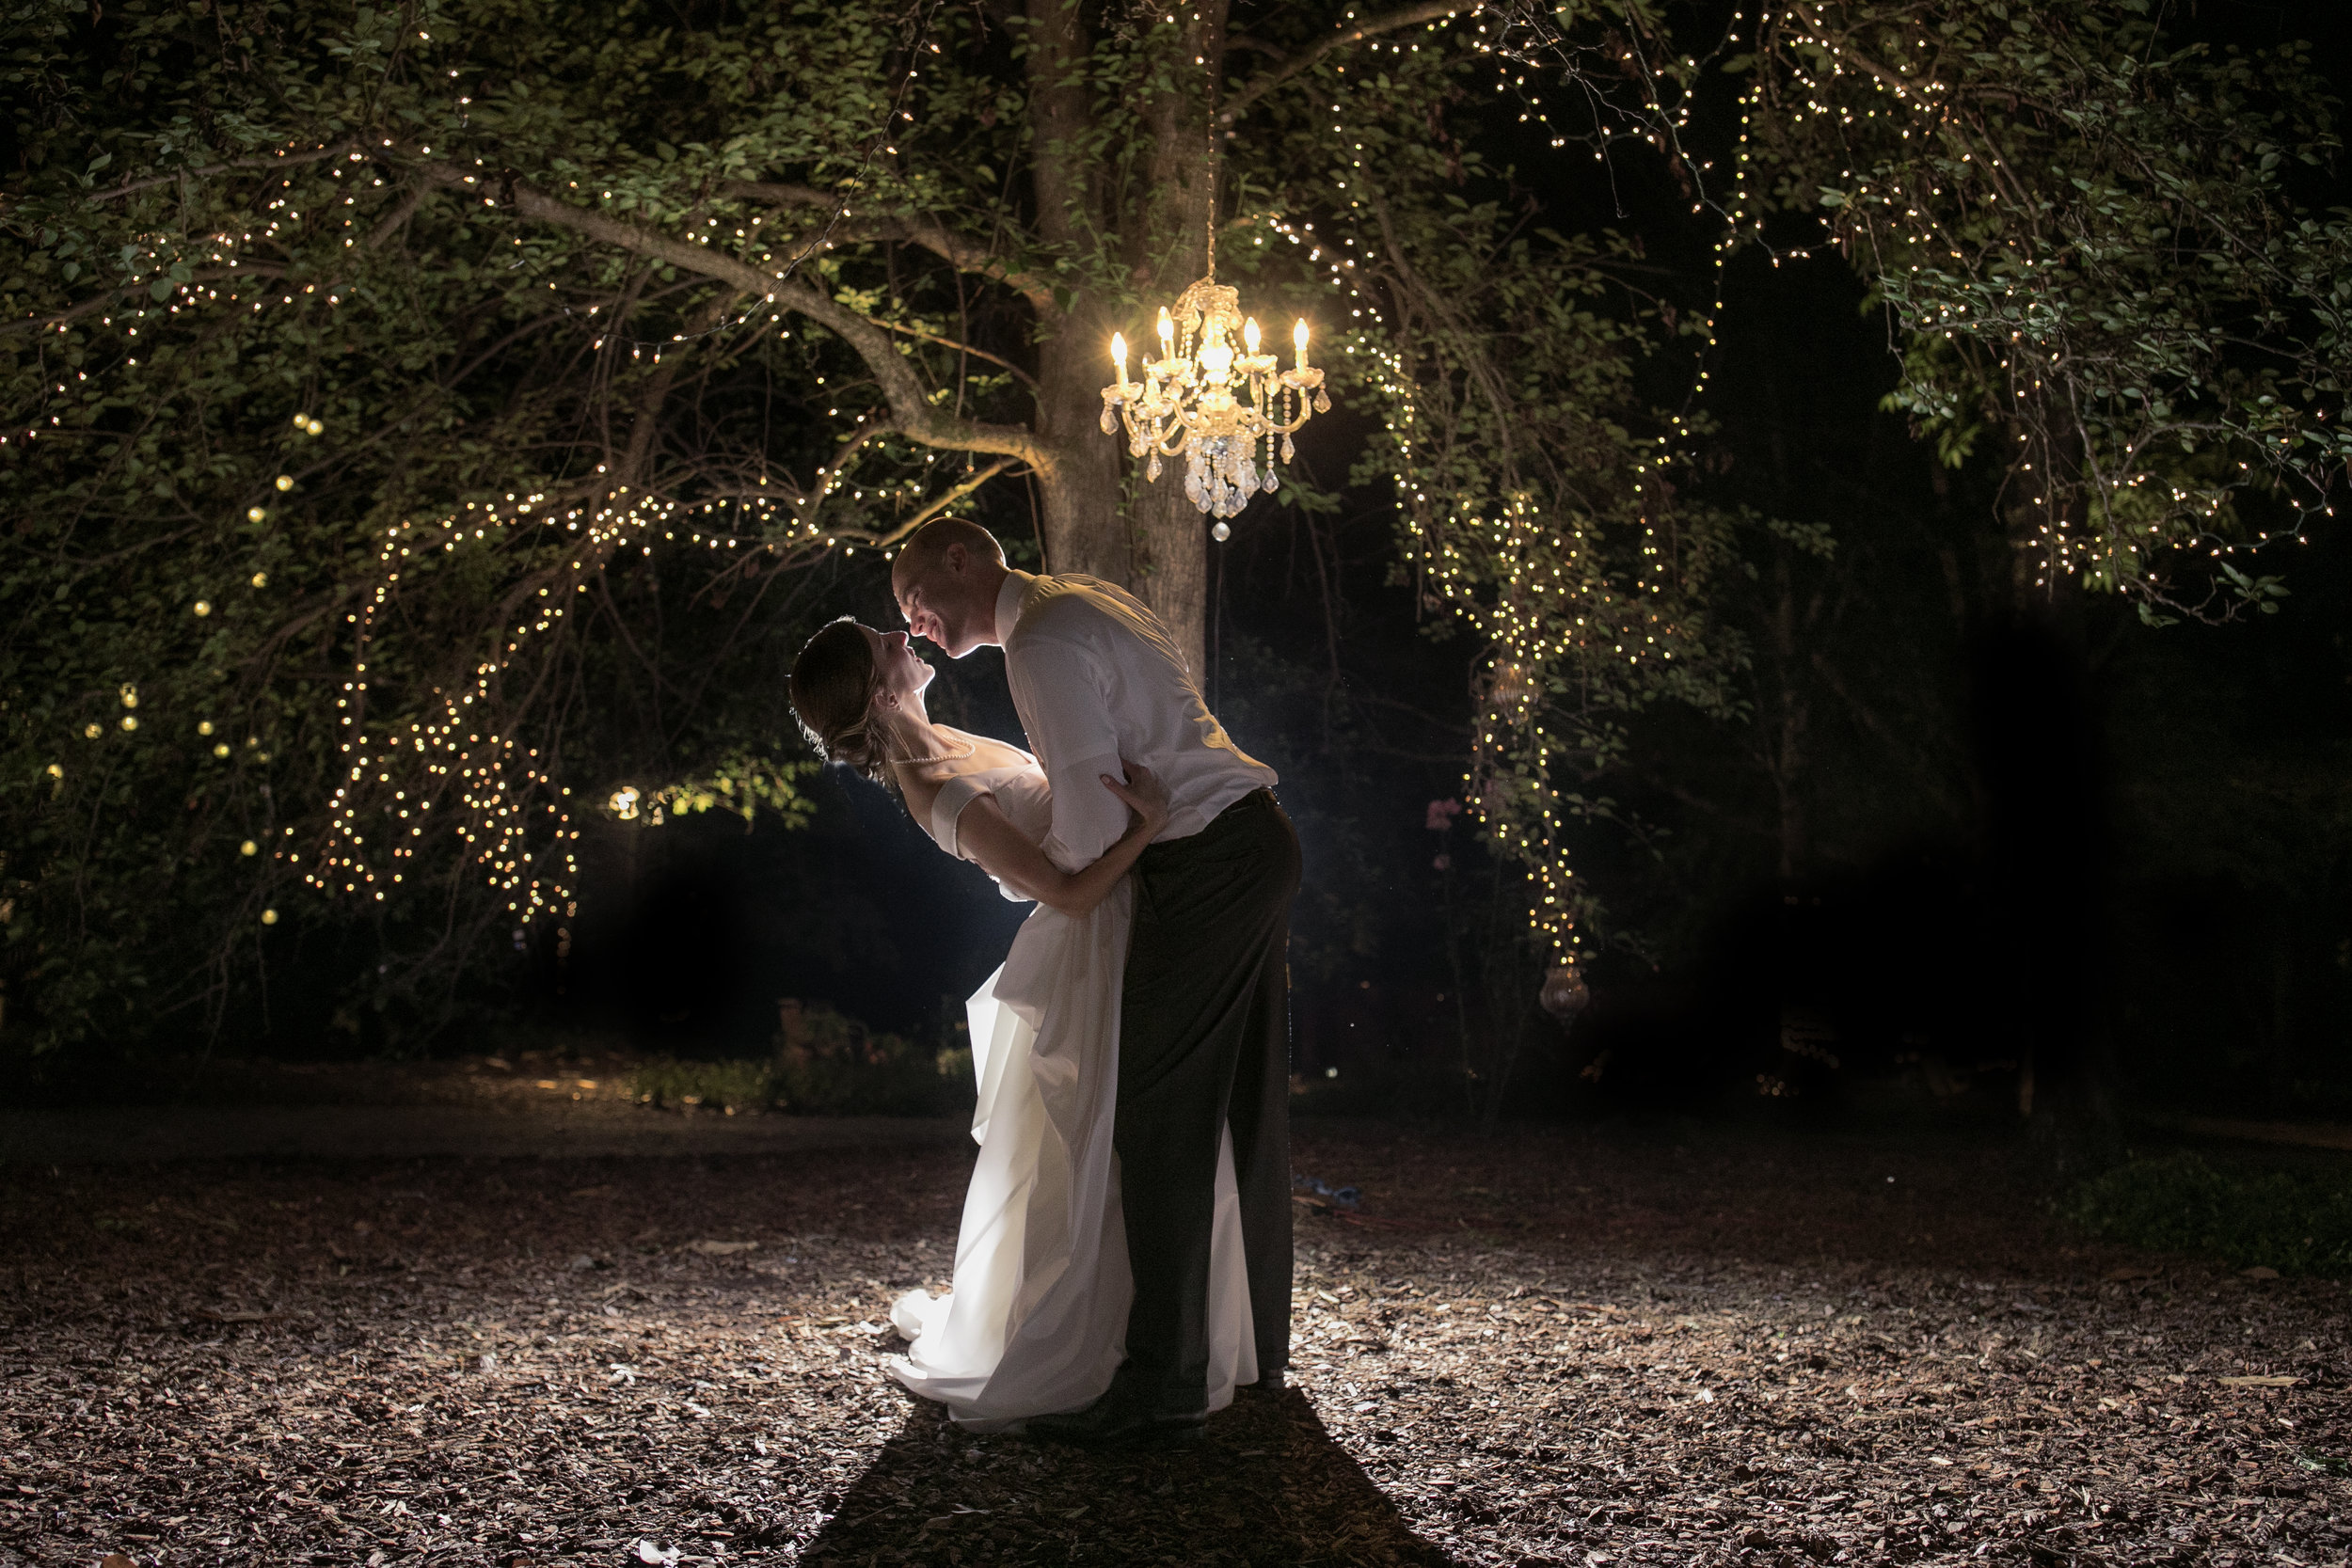 night wedding couple epic chandelier lights romantic